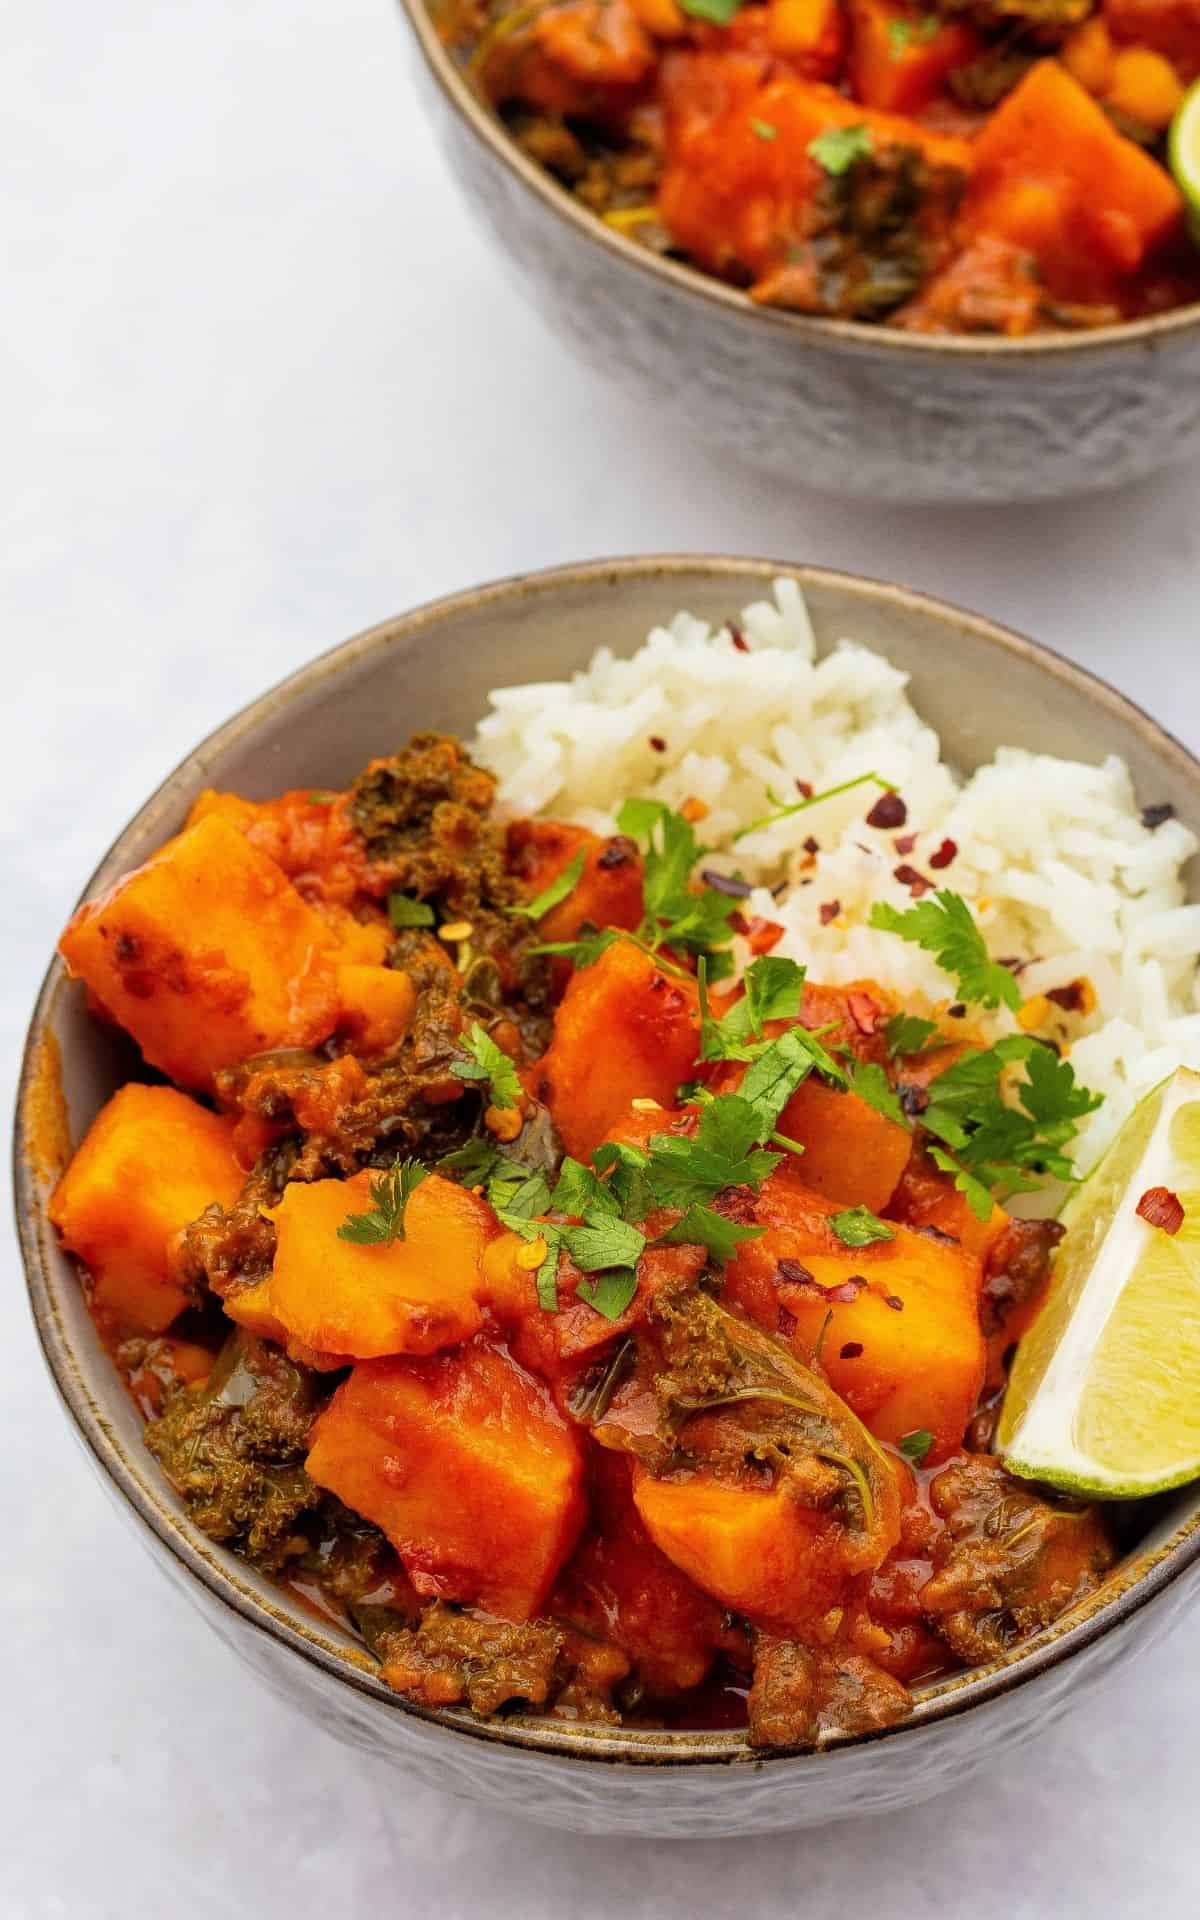 sweet potato & chickpea curry with white rice served in bowls